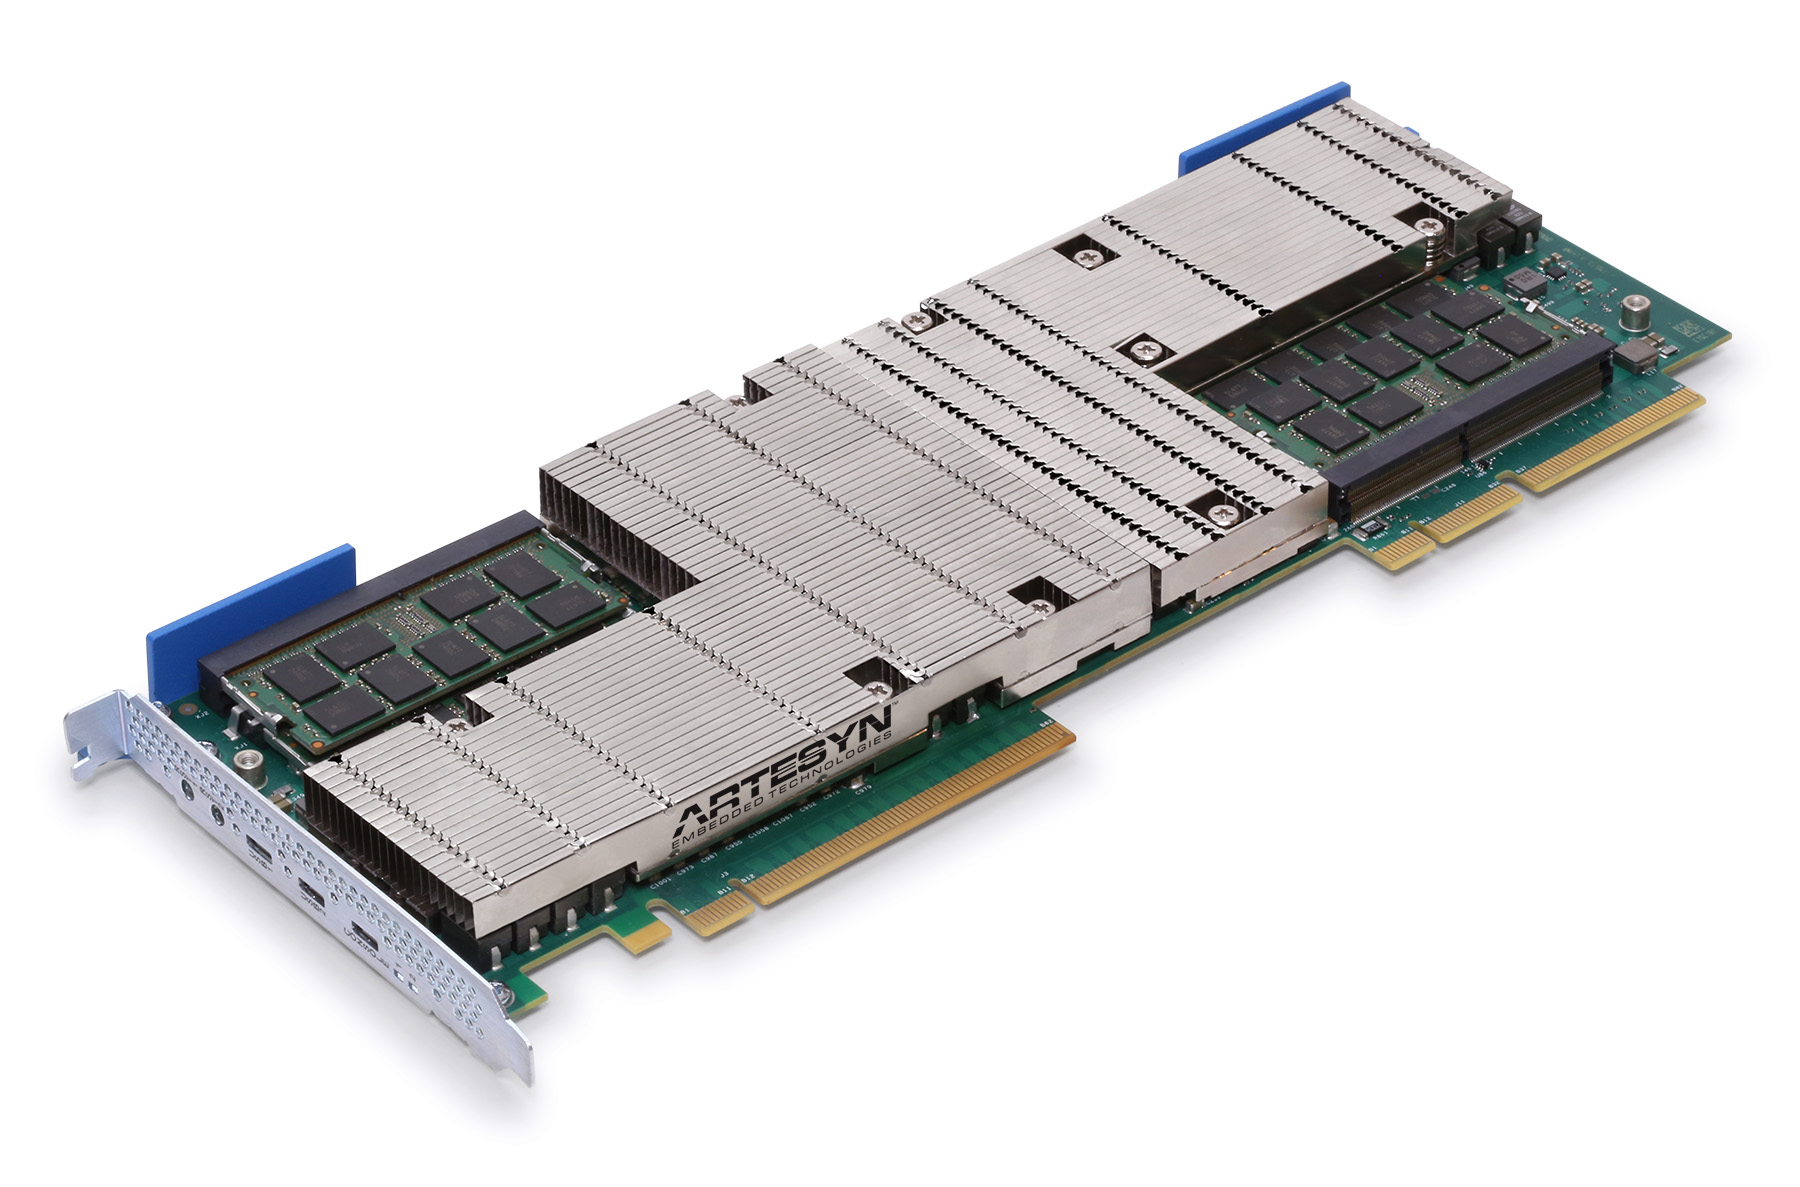 Artesyn SharpStreamer Pro Add-On Acceleration Card Now Available for Application-Specific Evaluation Through Remote Access Lab